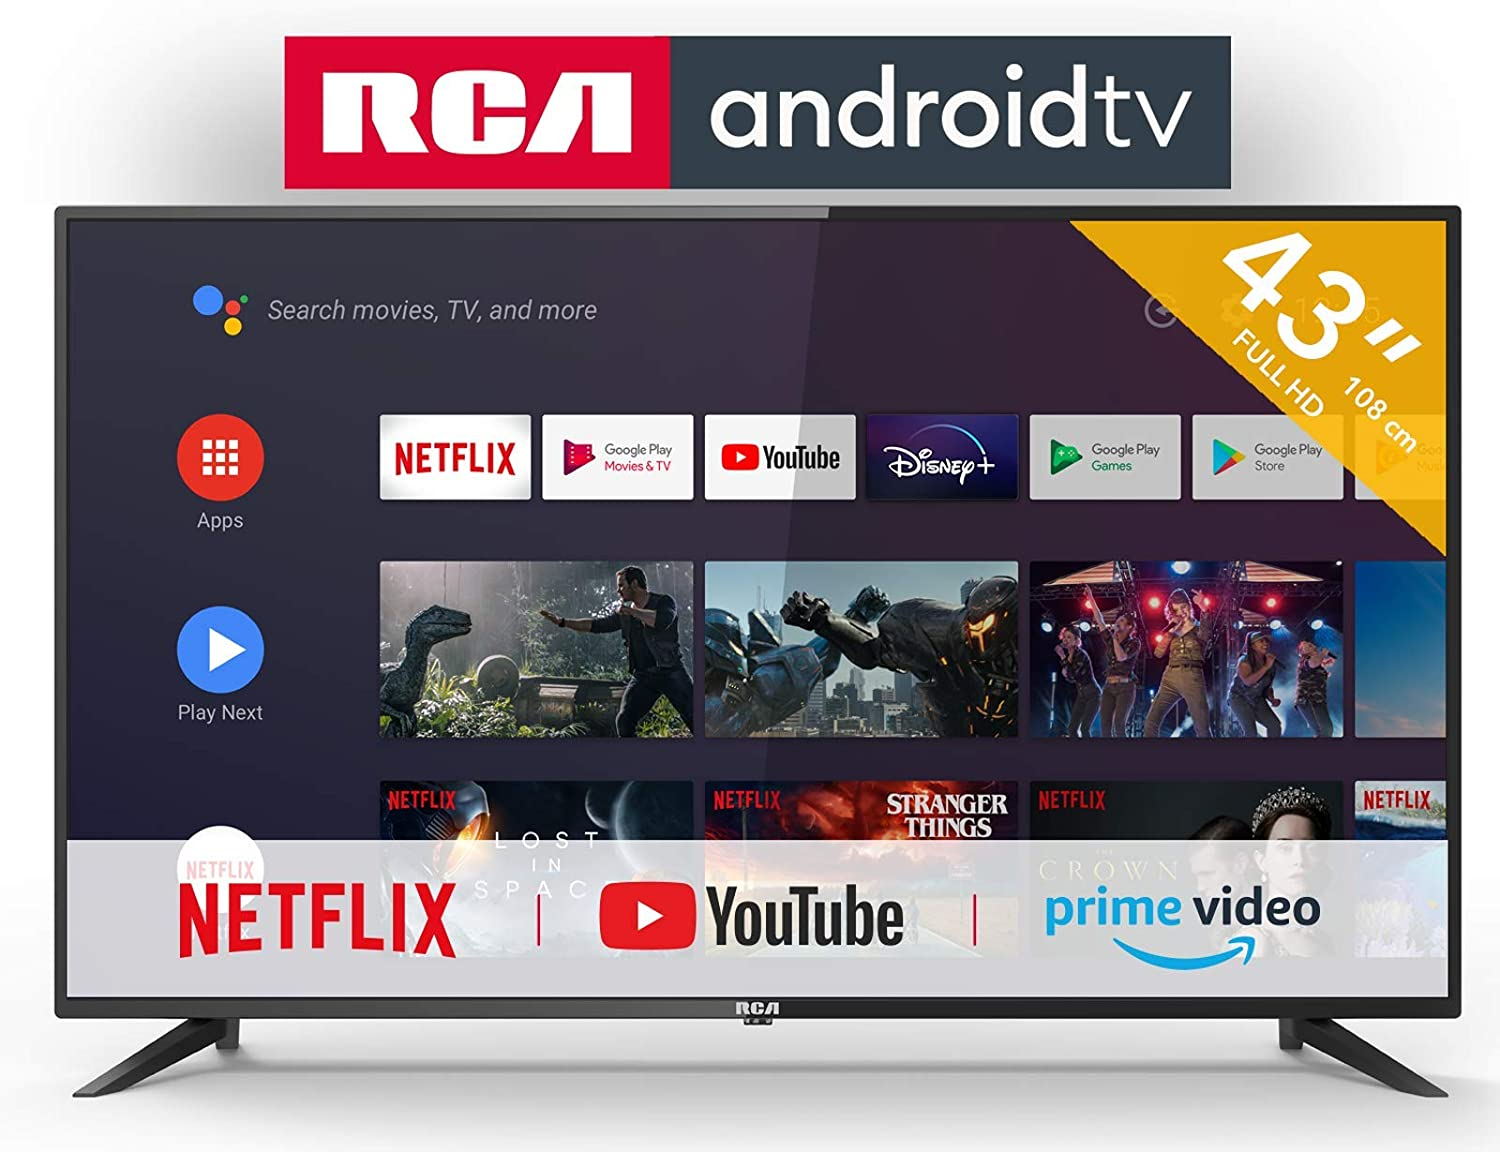 RCA RS43F2 Android TV (43 Pulgadas Full HD Smart TV con Google Assistant), Chromecast Incorporado, HDMI+USB, Triple Tuner, 60Hz: Amazon.es: Electrónica